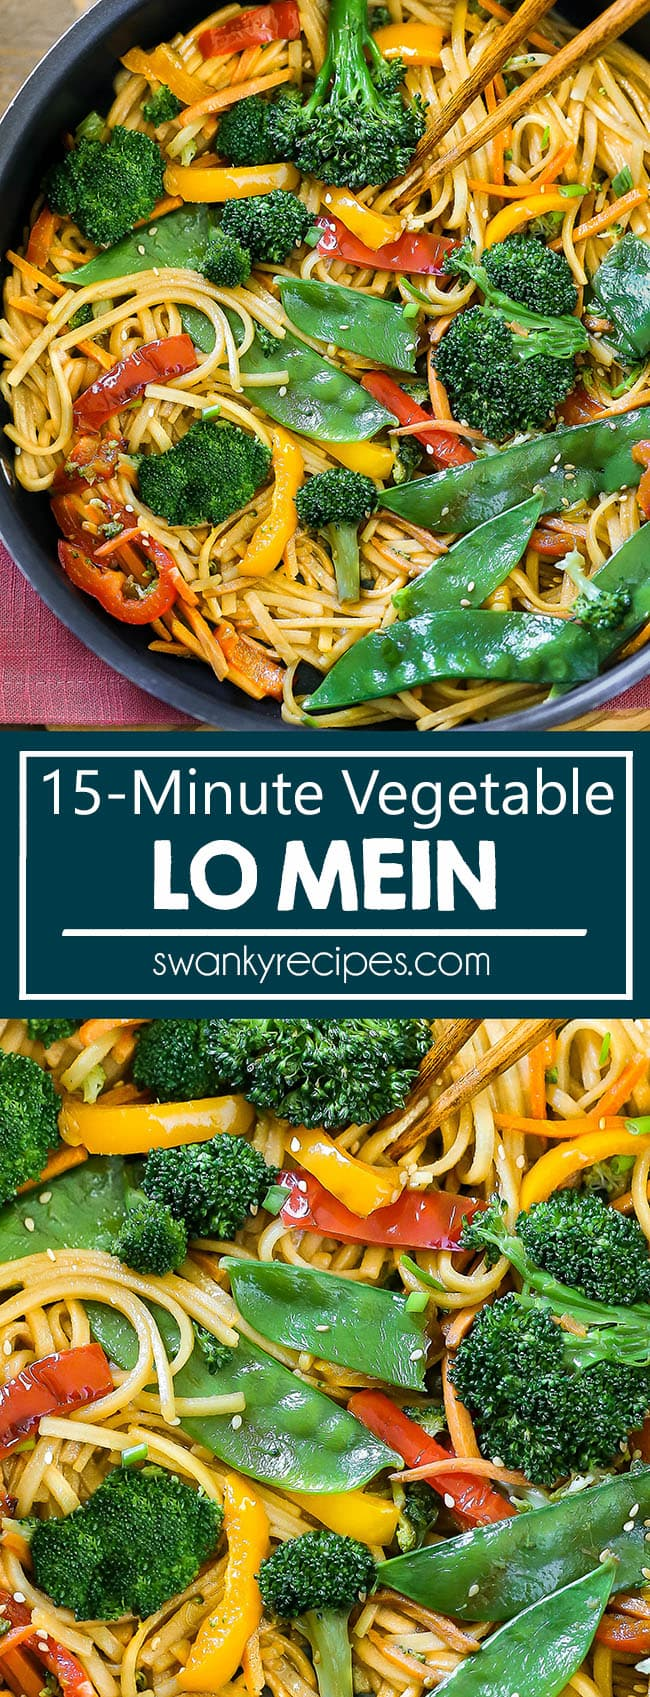 Best ever Lo Mein made in 15 minutes. This Chinese classic uses stir-fry vegetables tossed with noodles in a soy sauce, garlic, honey sauce.